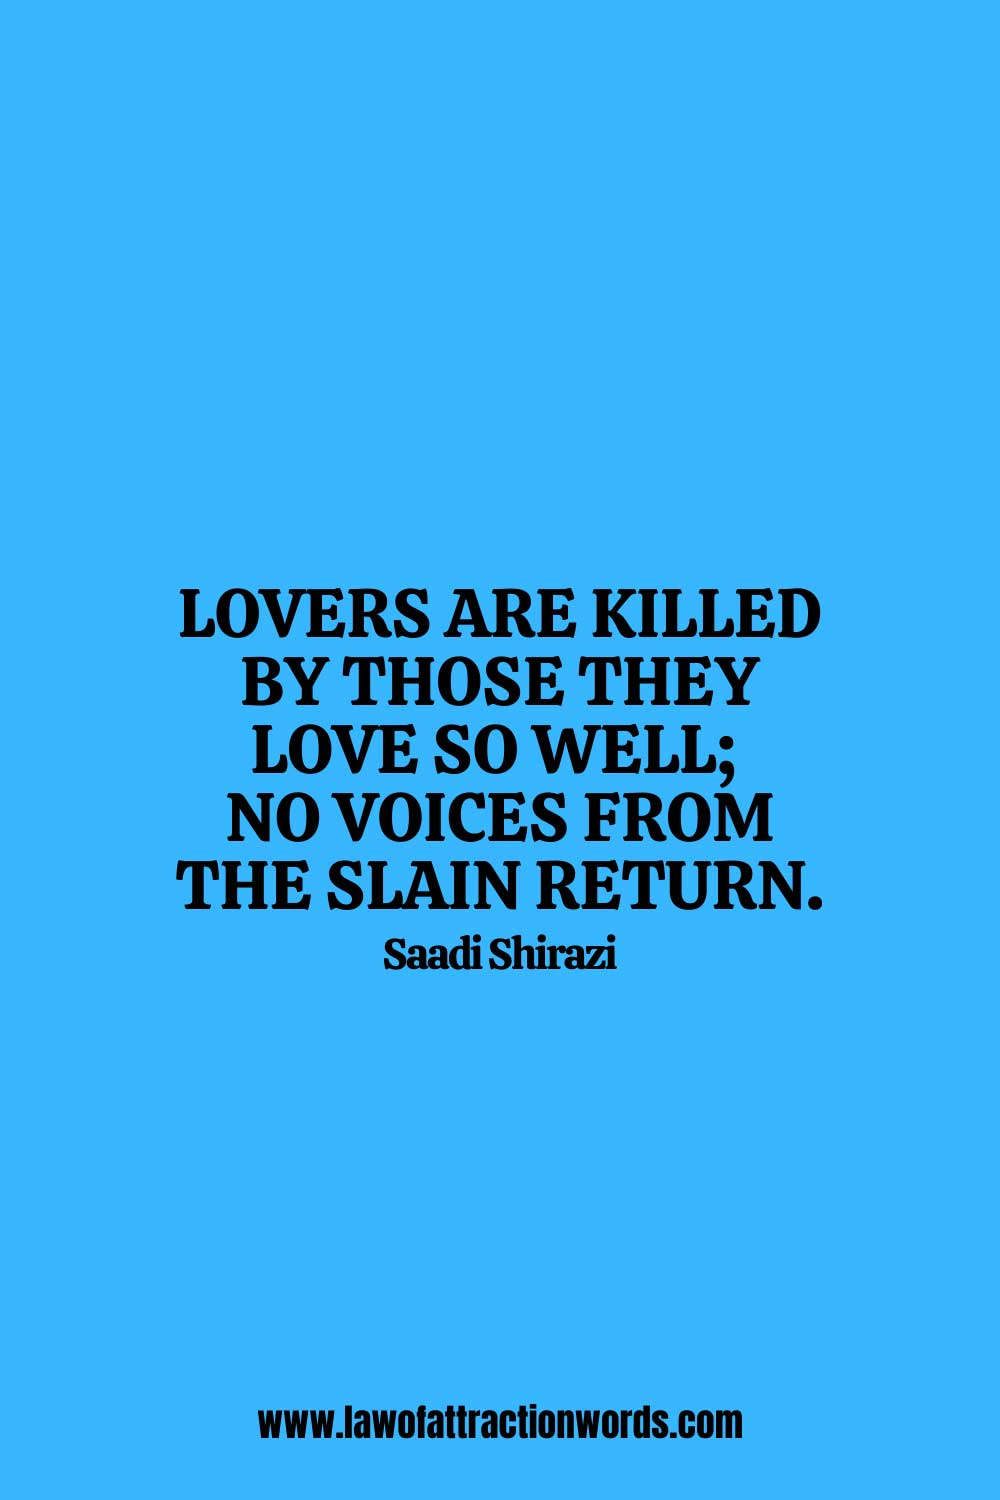 Deep Spiritual Quotes About Loss Of A Loved One